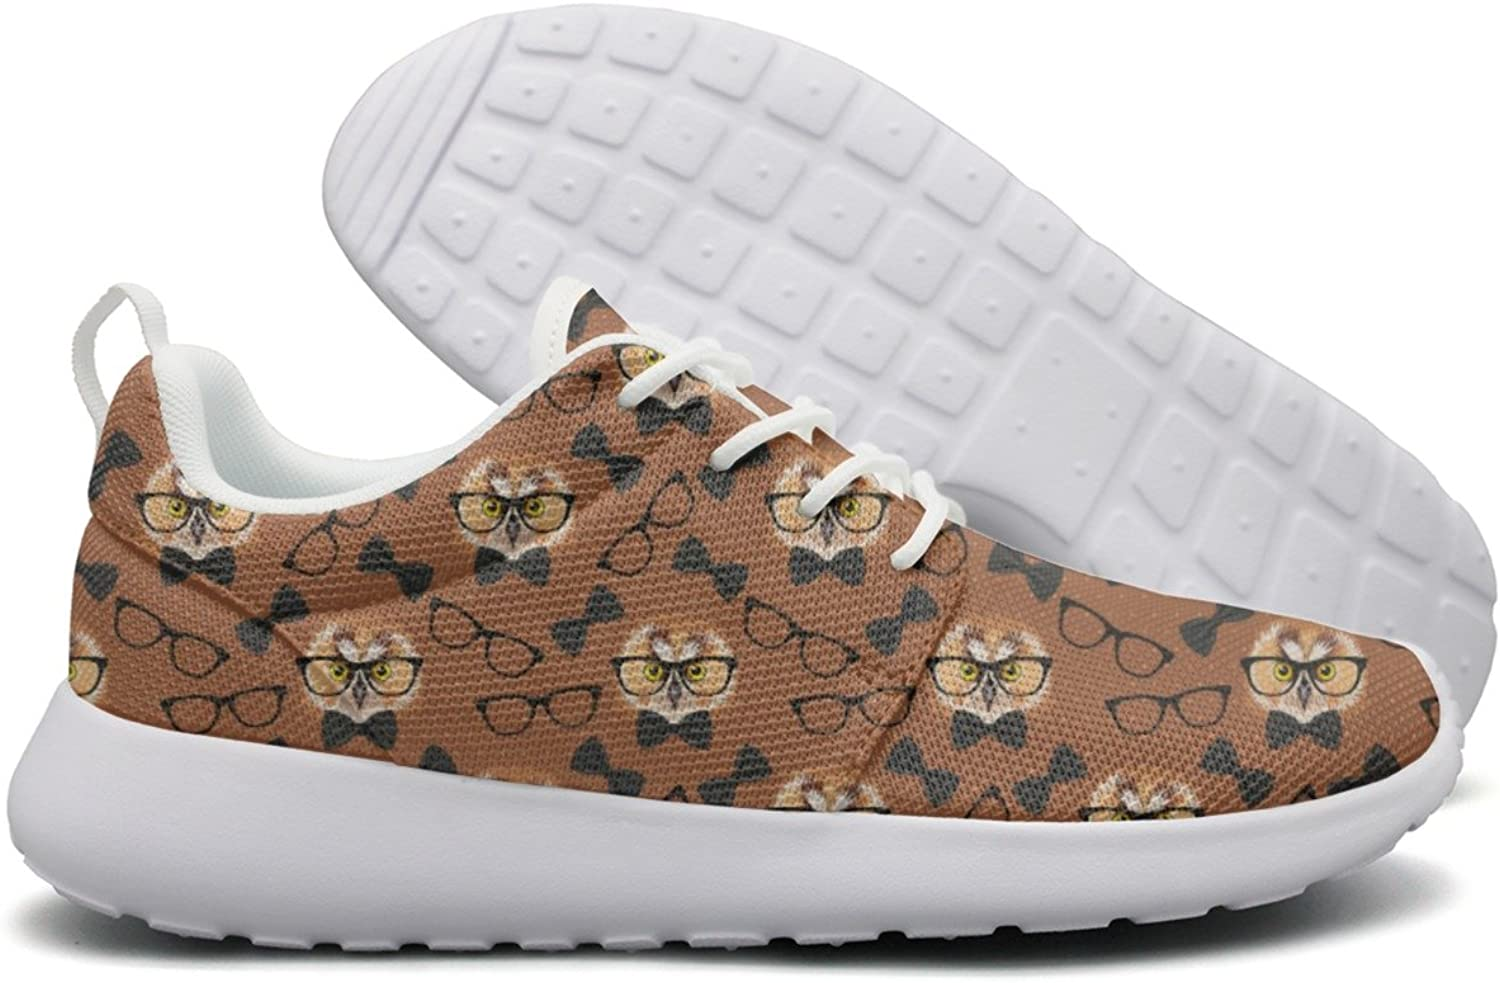 Owl With Glasses Woman's Camping Running shoes Cool colorful